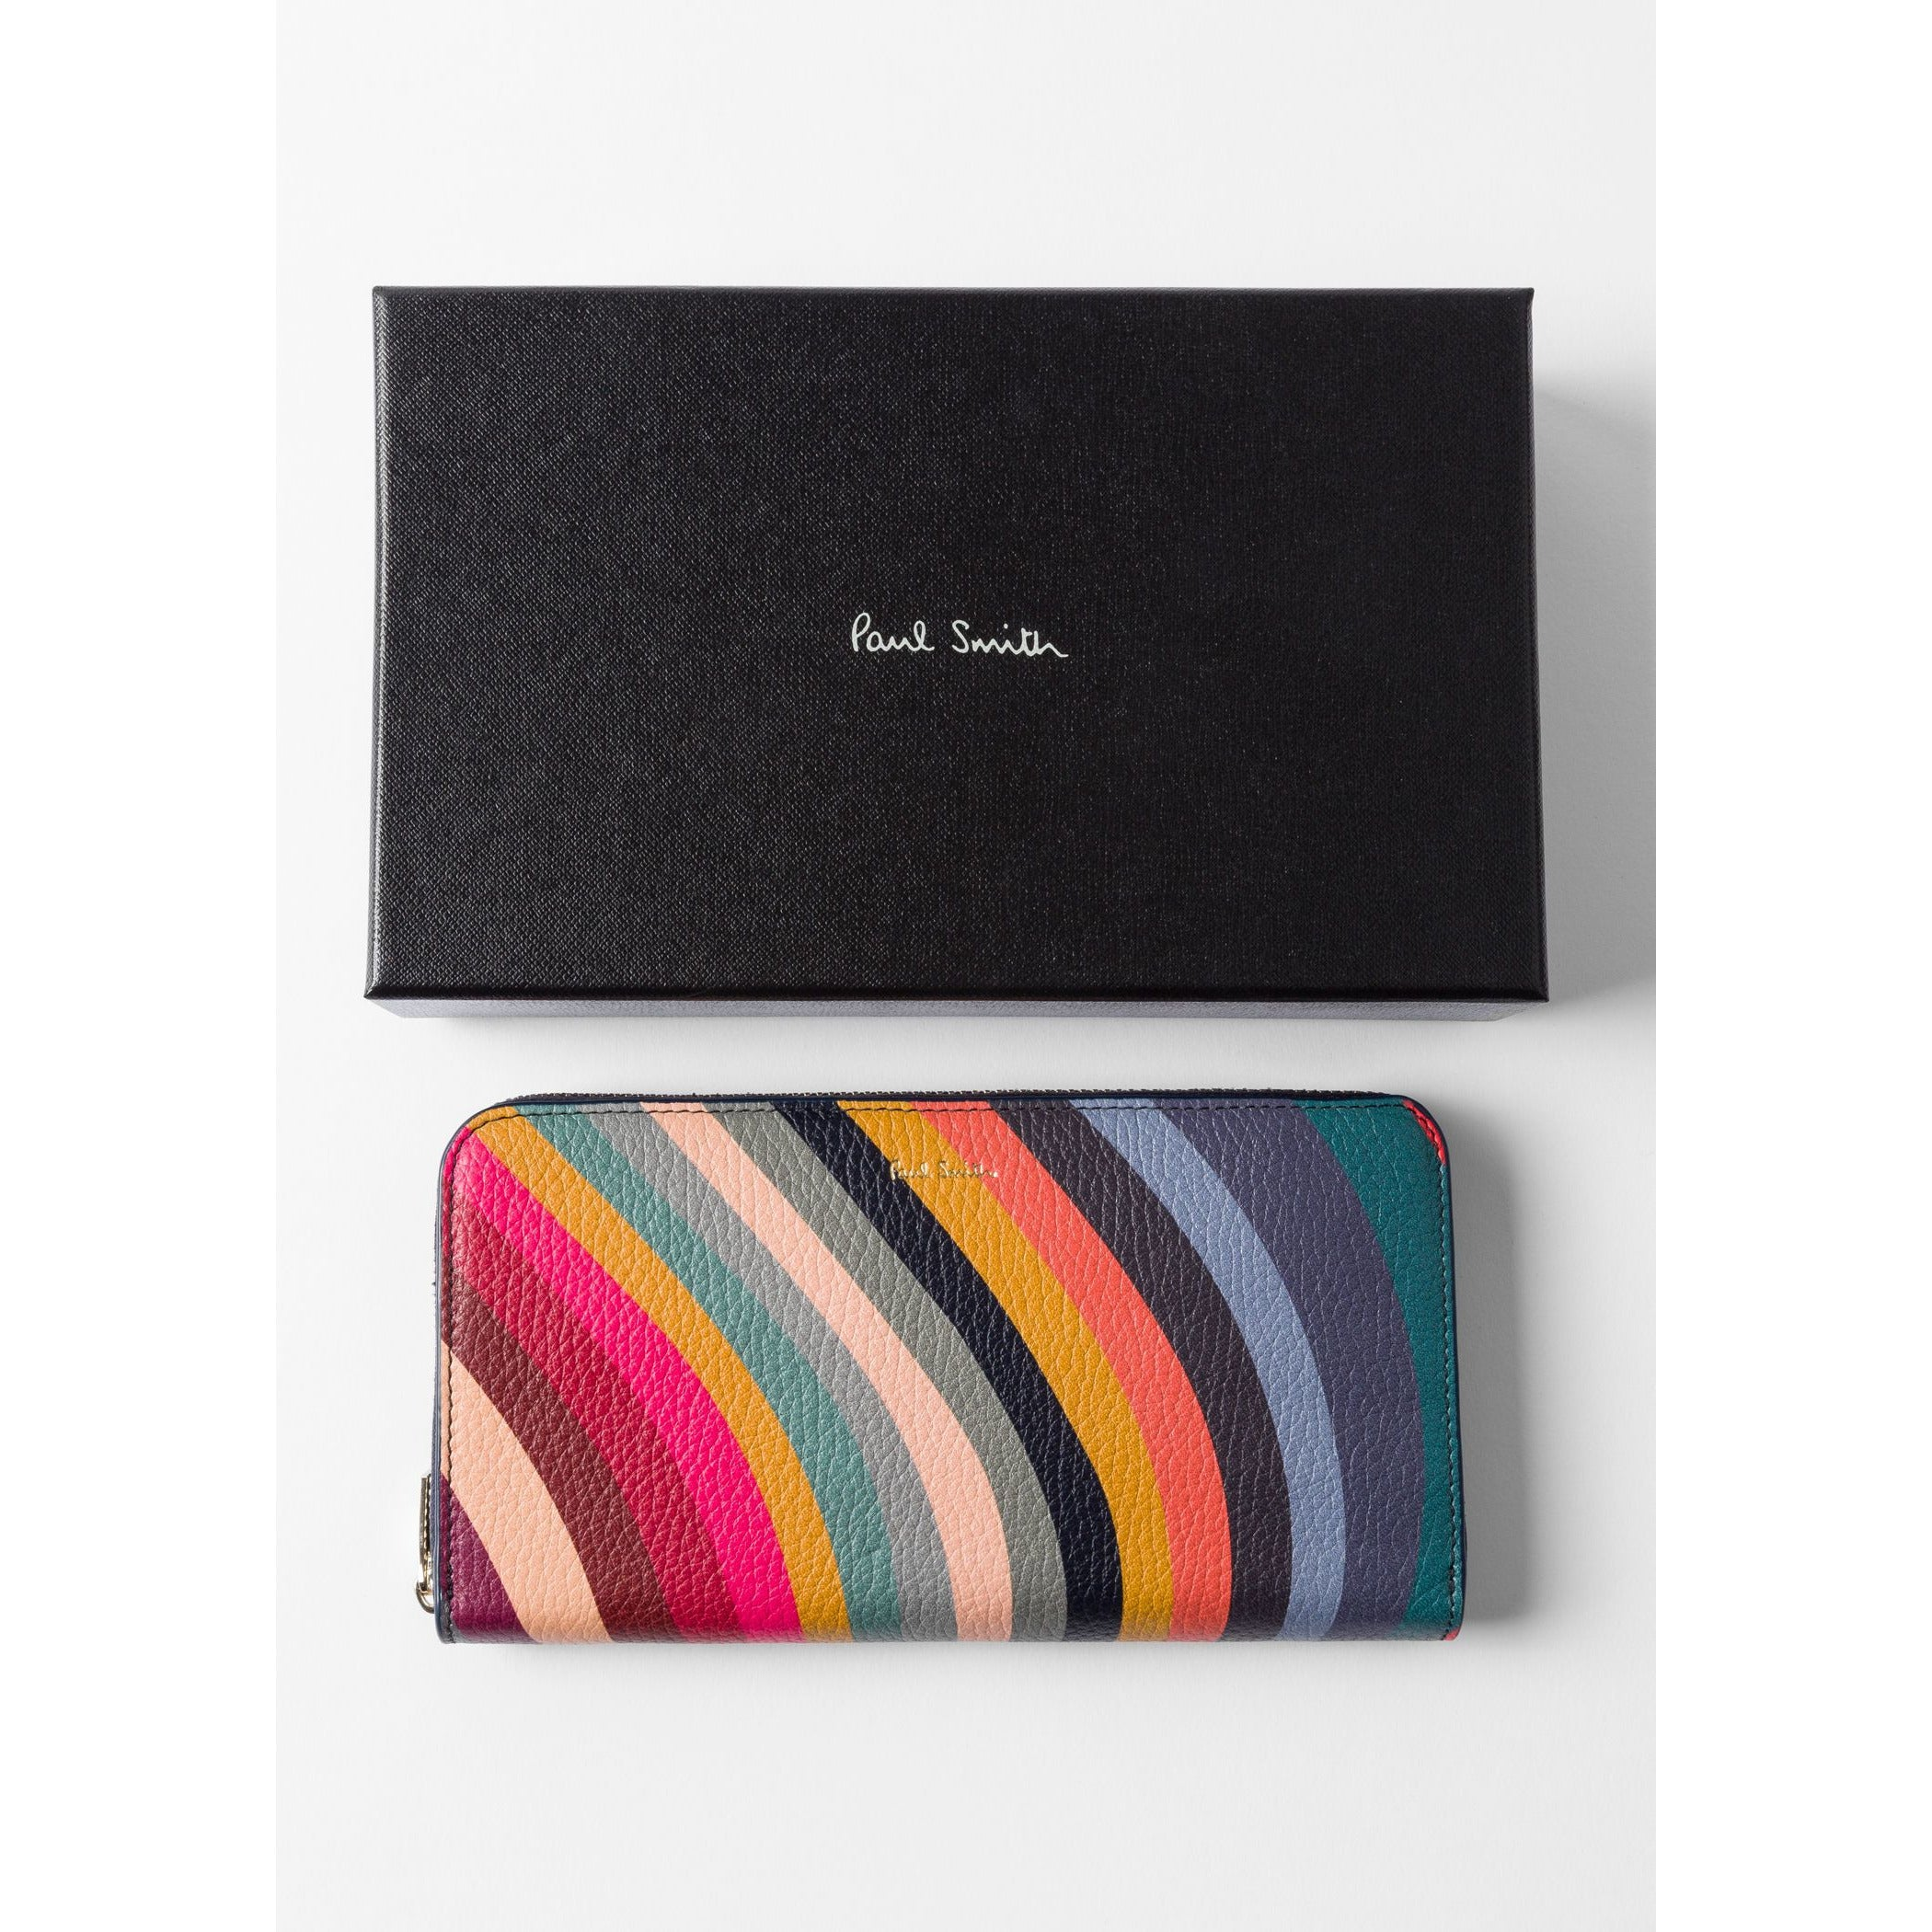 PS PAUL SMITH ACCESSORIES WOMENS LARGE ZIP PURSE SWIRL